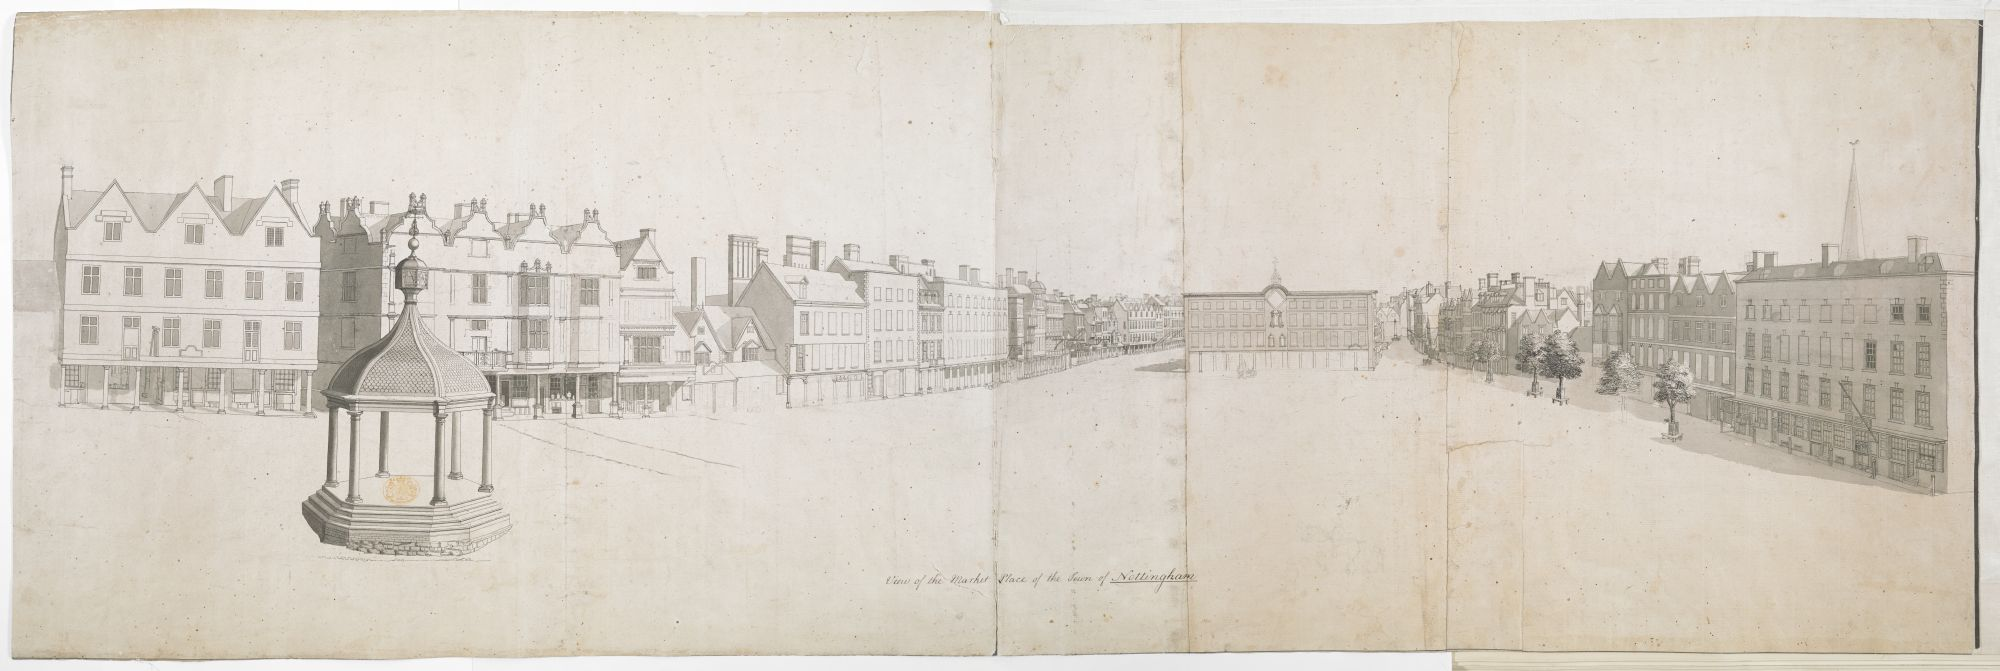 Thomas Sandby's View of the Market Place of the Town of Nottingham; An empty market place; shops on either side and in front; a market square on the left-hand side. Inscribed with title in black ink along the lower edge.